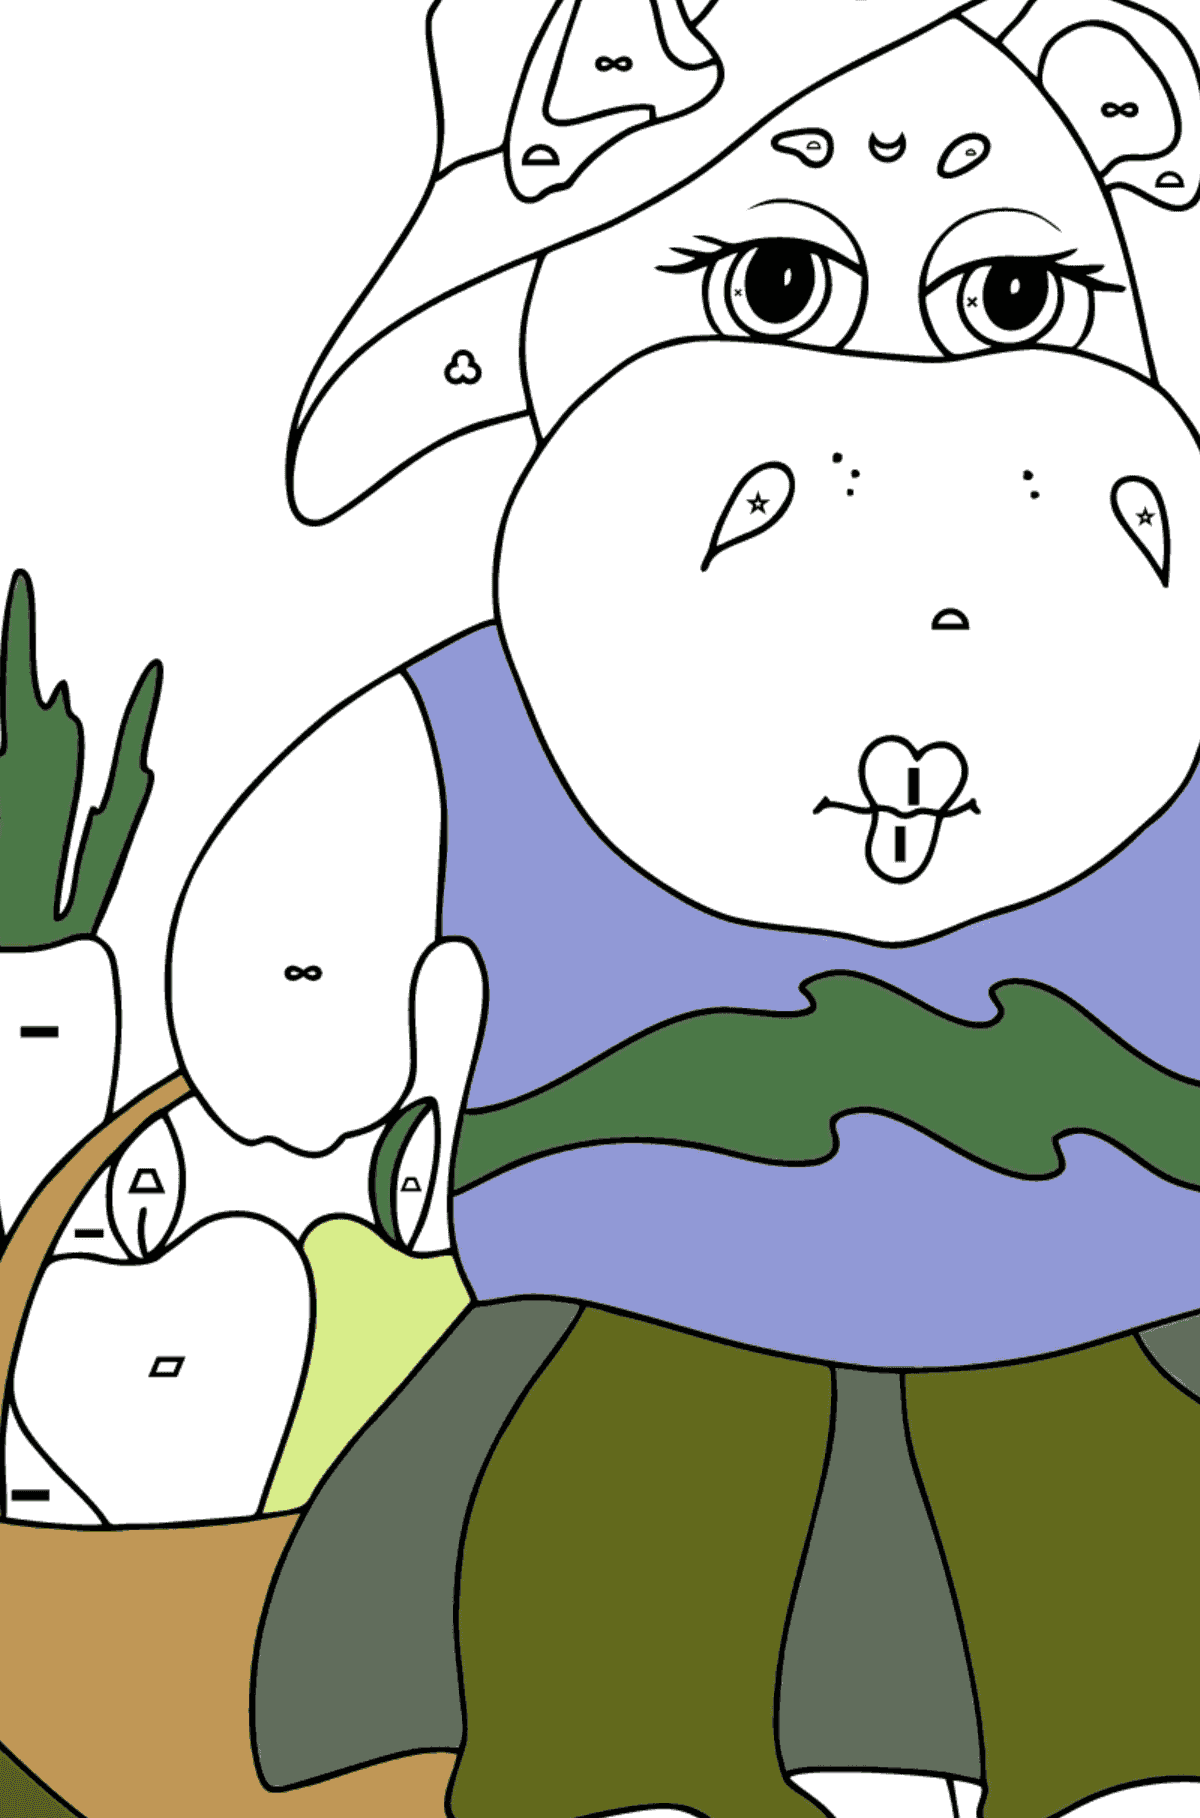 Coloring Page - A Hippo with a Crop Basket for Children  - Color by Symbols and Geometric Shapes